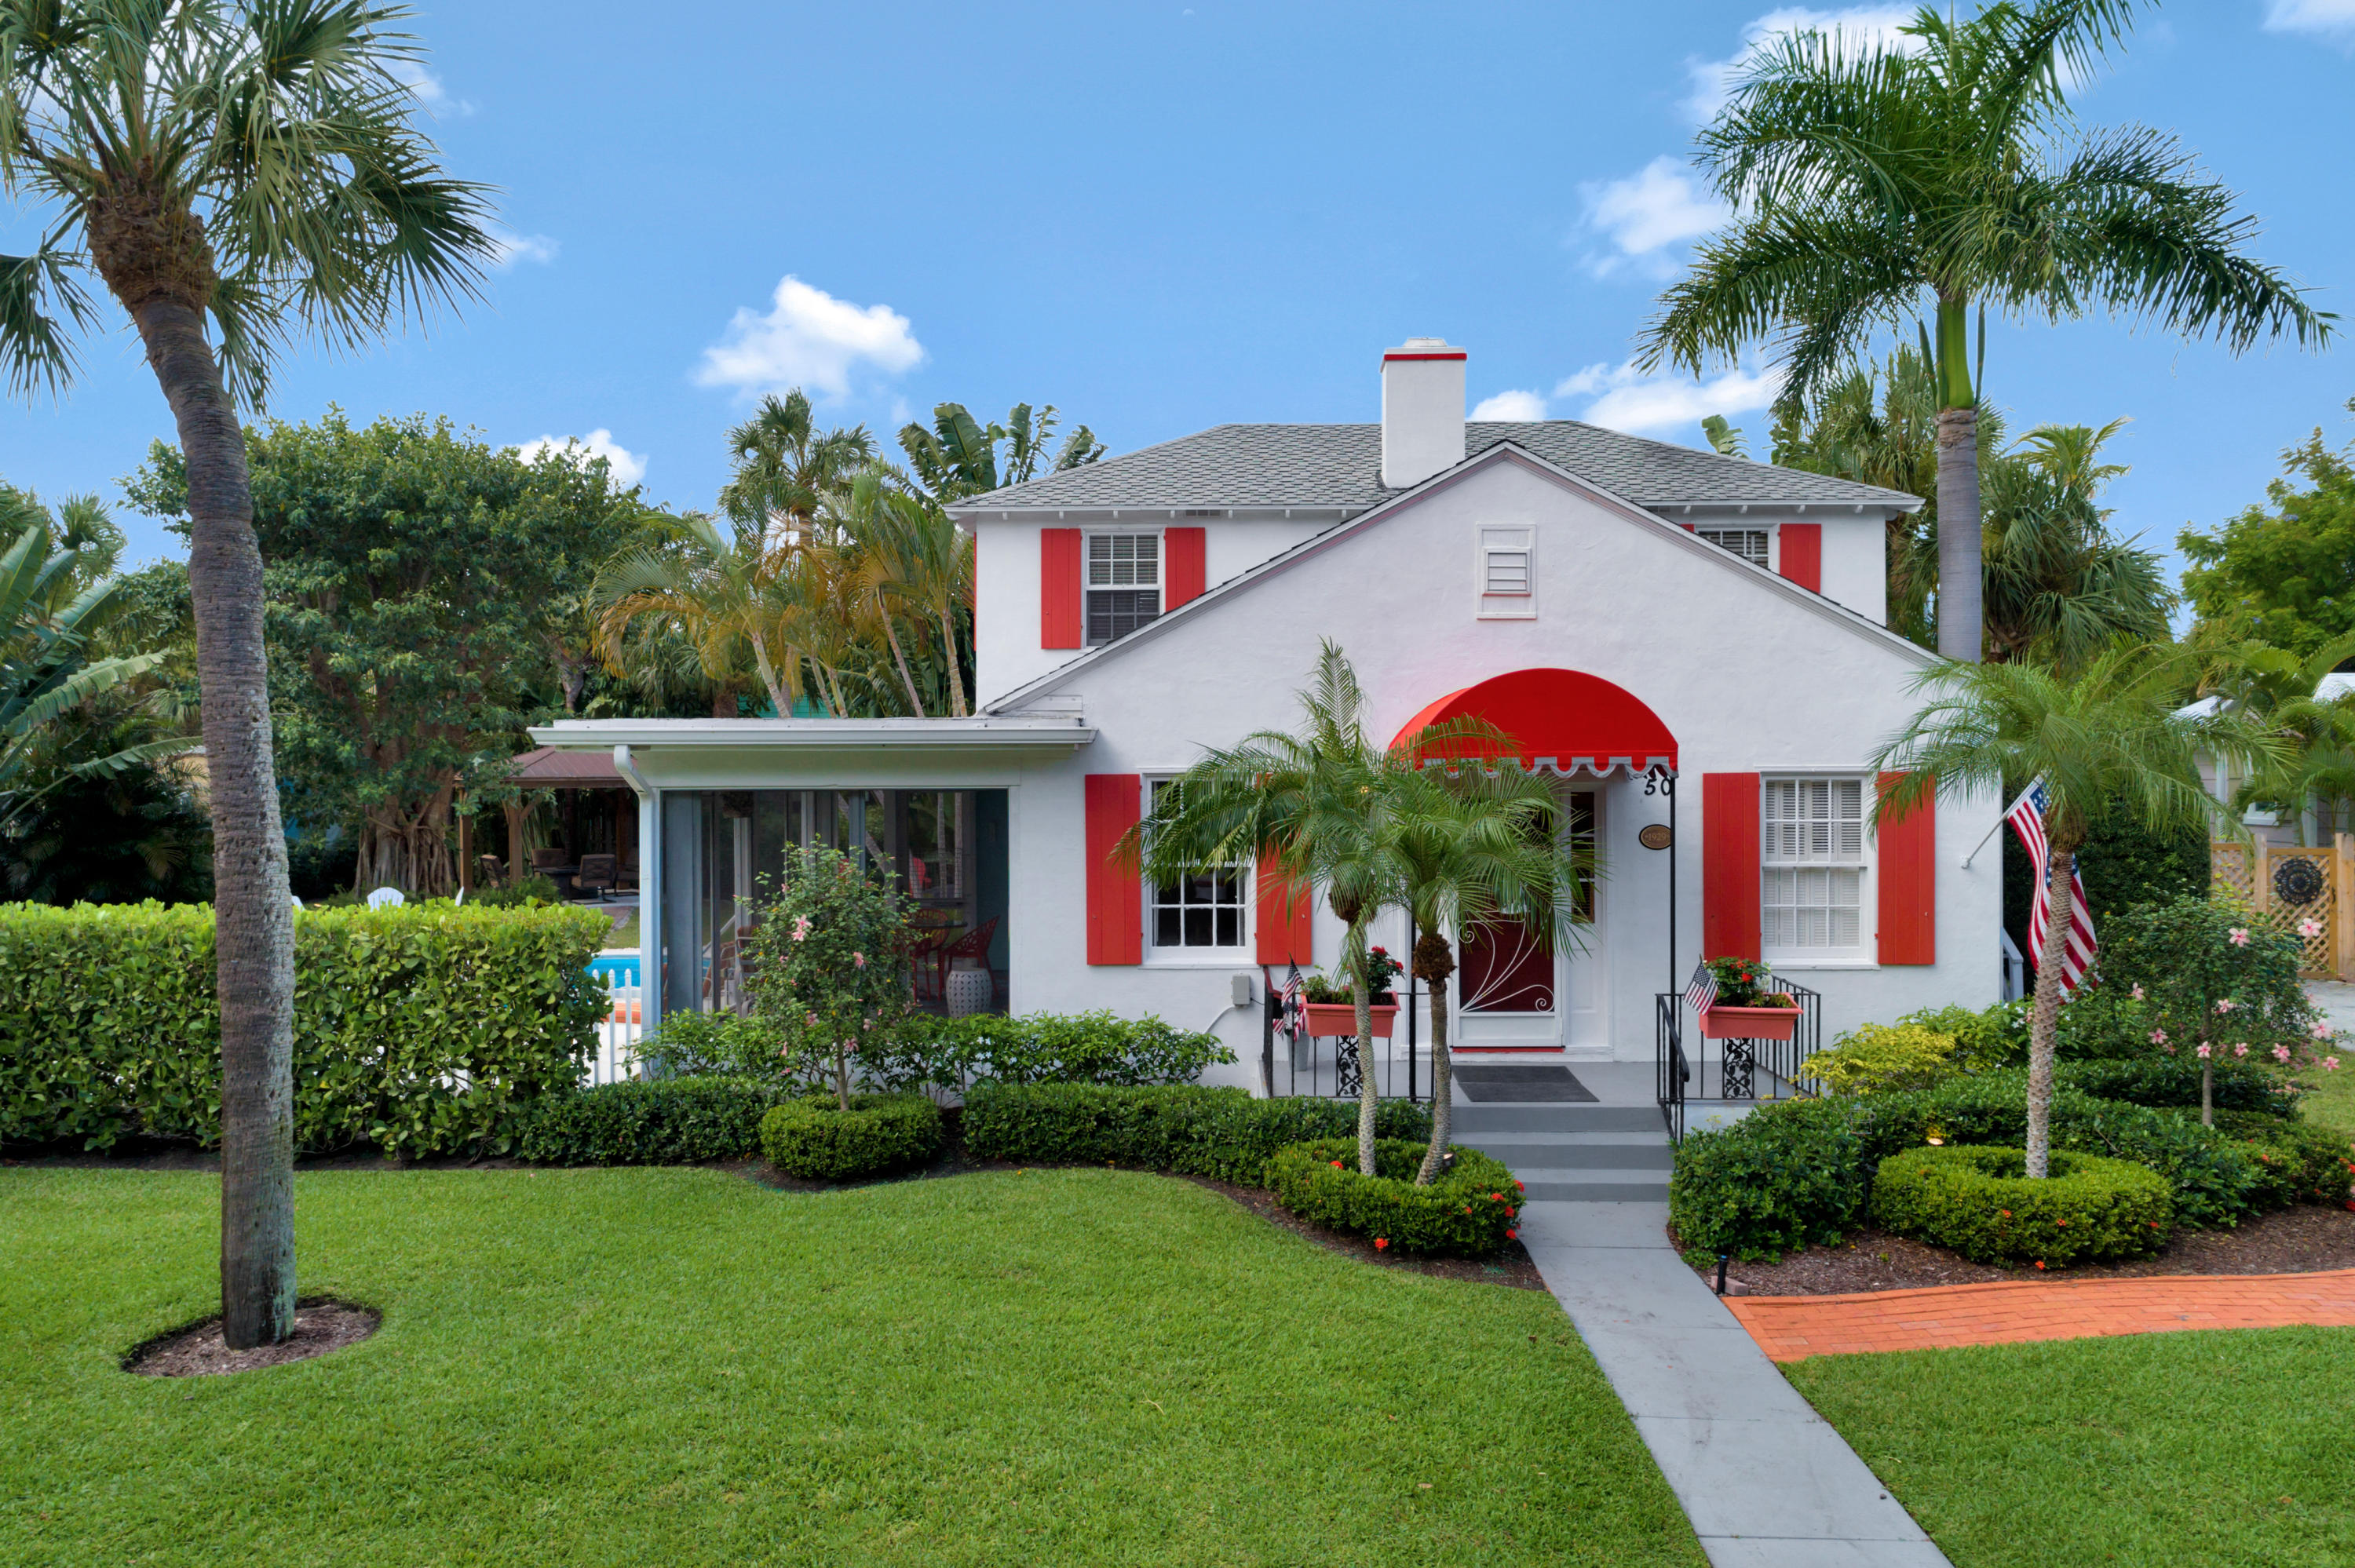 50 Palm Square, Delray Beach, Florida 33483, 4 Bedrooms Bedrooms, ,3 BathroomsBathrooms,Single Family Detached,For Sale,Palm Square,RX-10567521